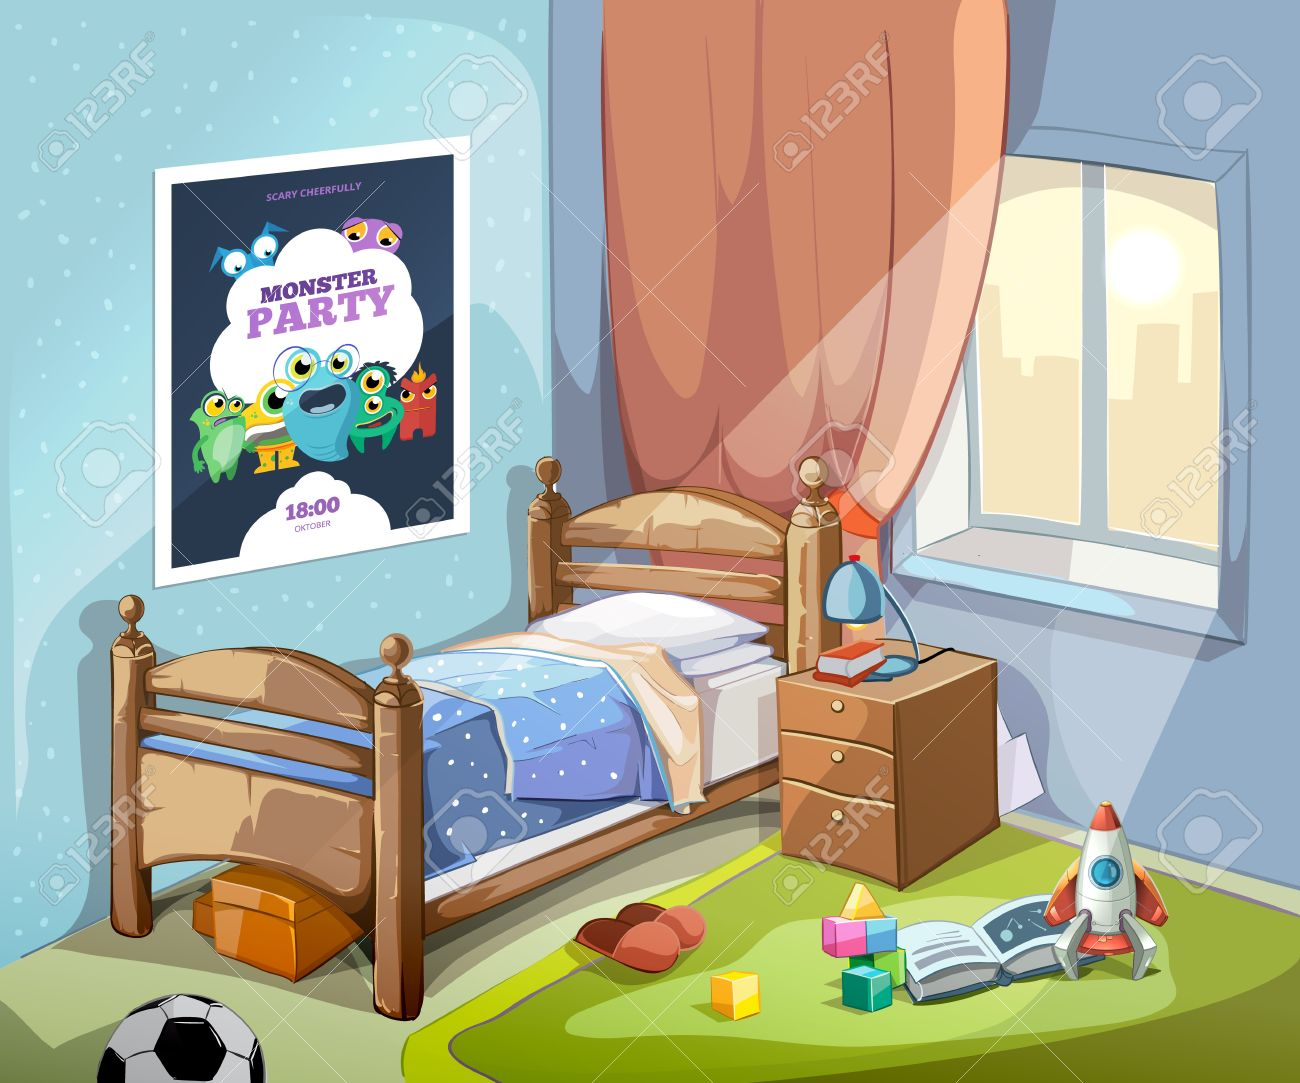 Childrens Bedroom Interior In Cartoon Style With Football Ball And Toys Vector Ilration Stock Vector